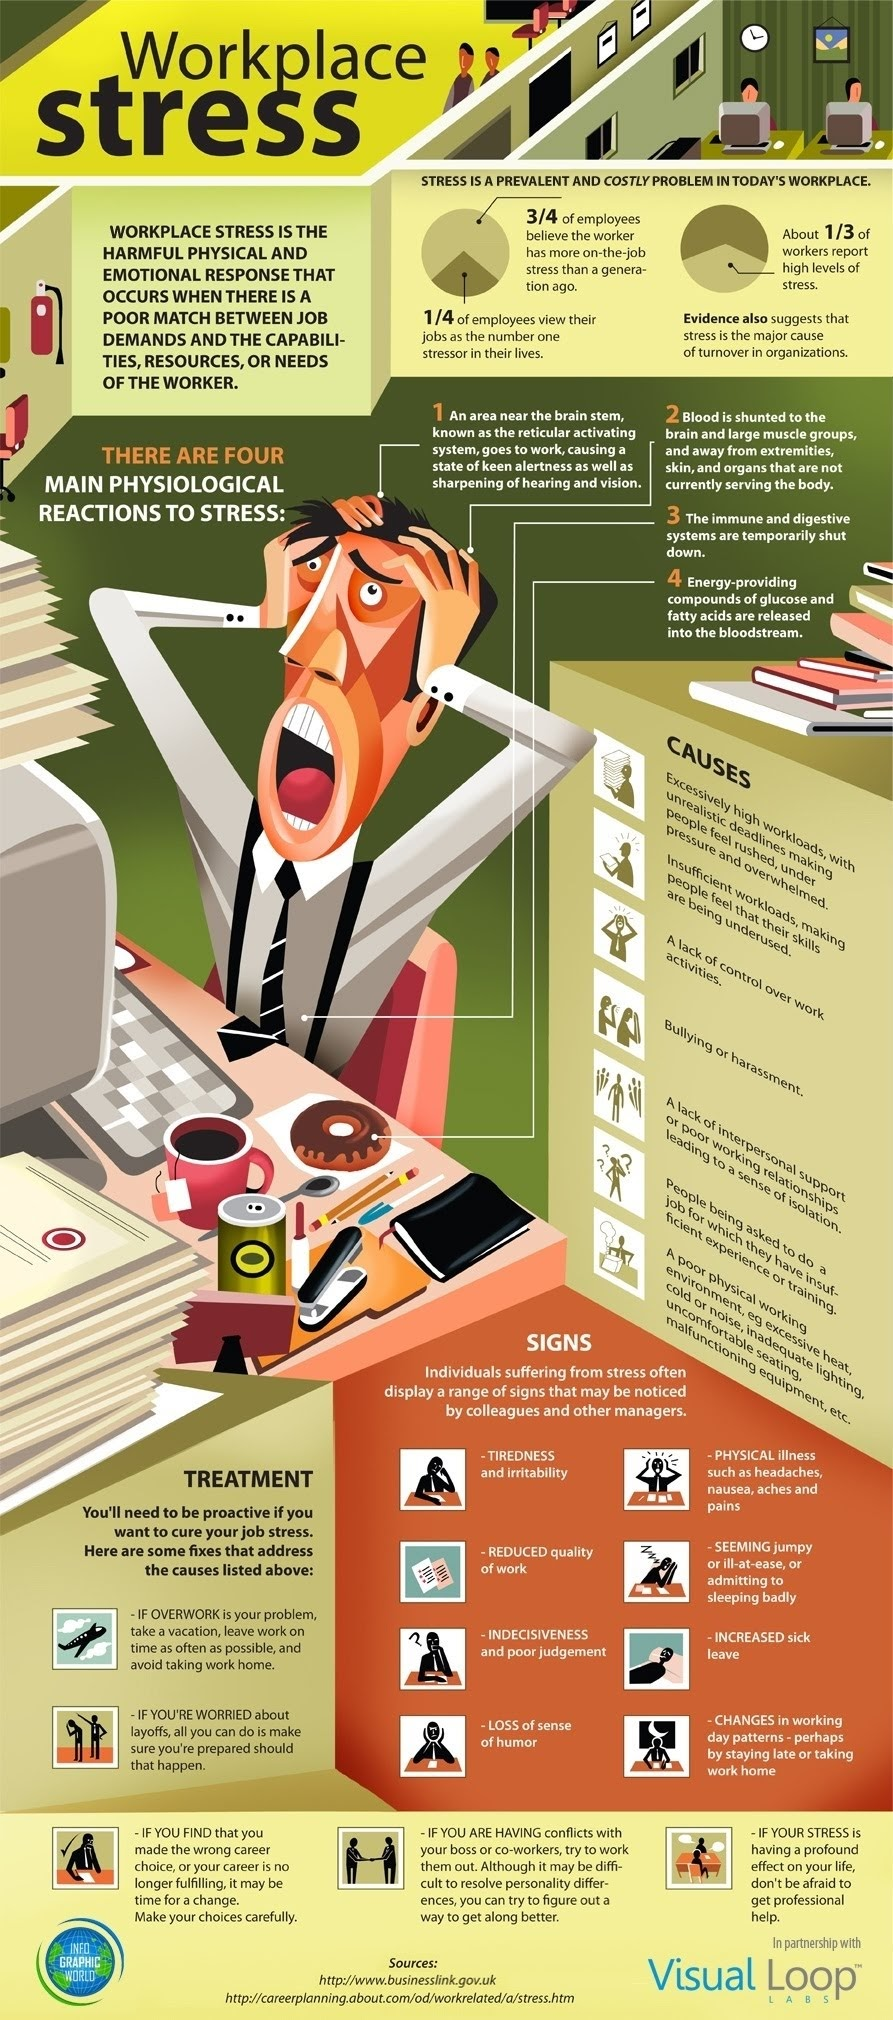 Workplace Stress: Signs, Symptoms & Treatment